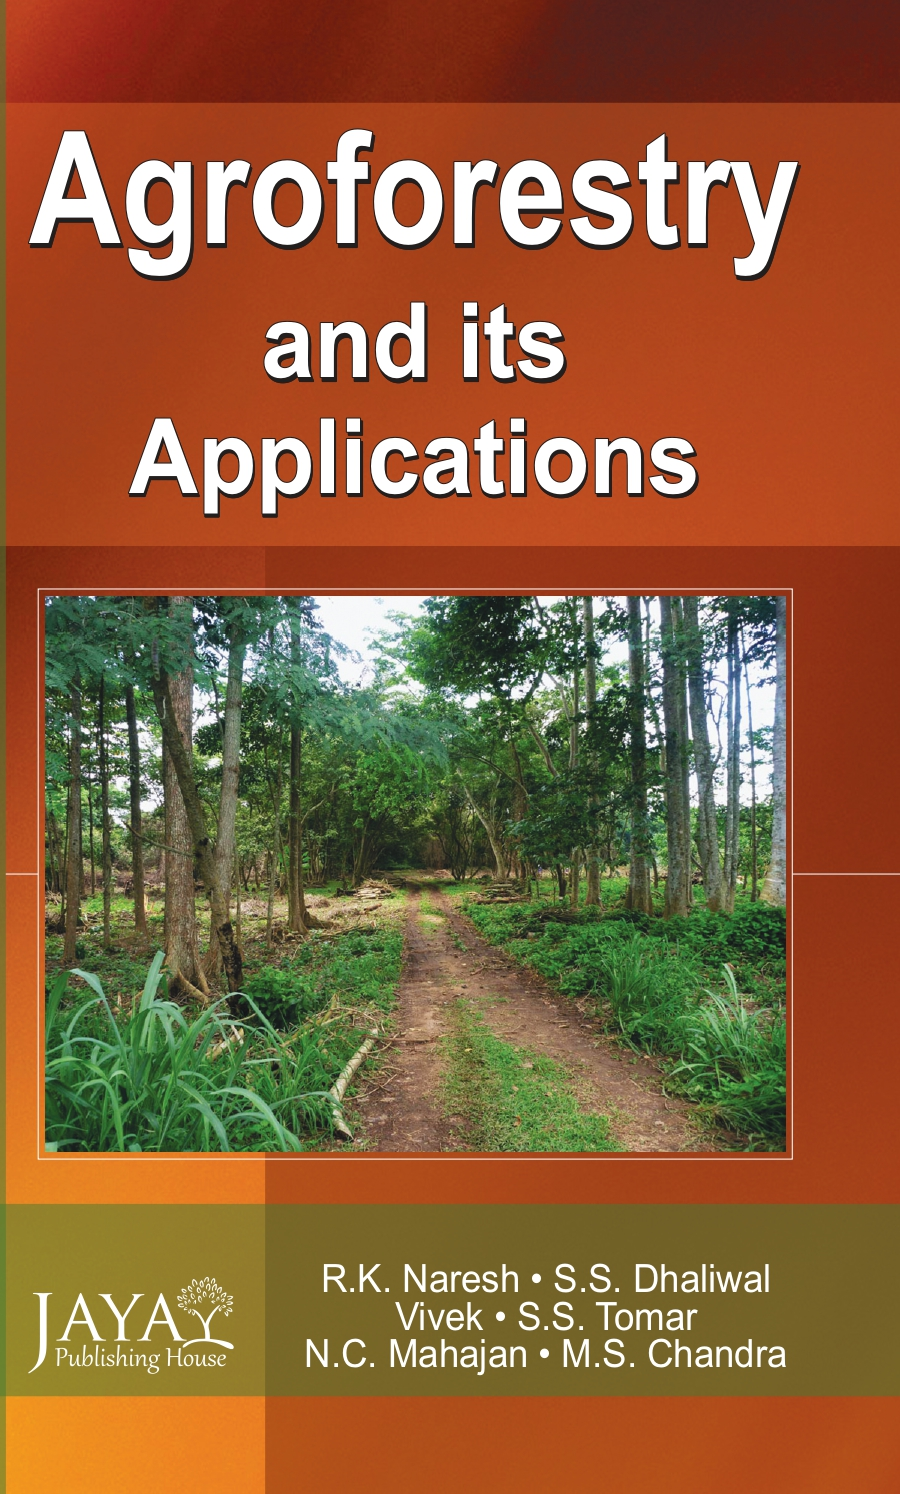 Agroforestry and its Applications